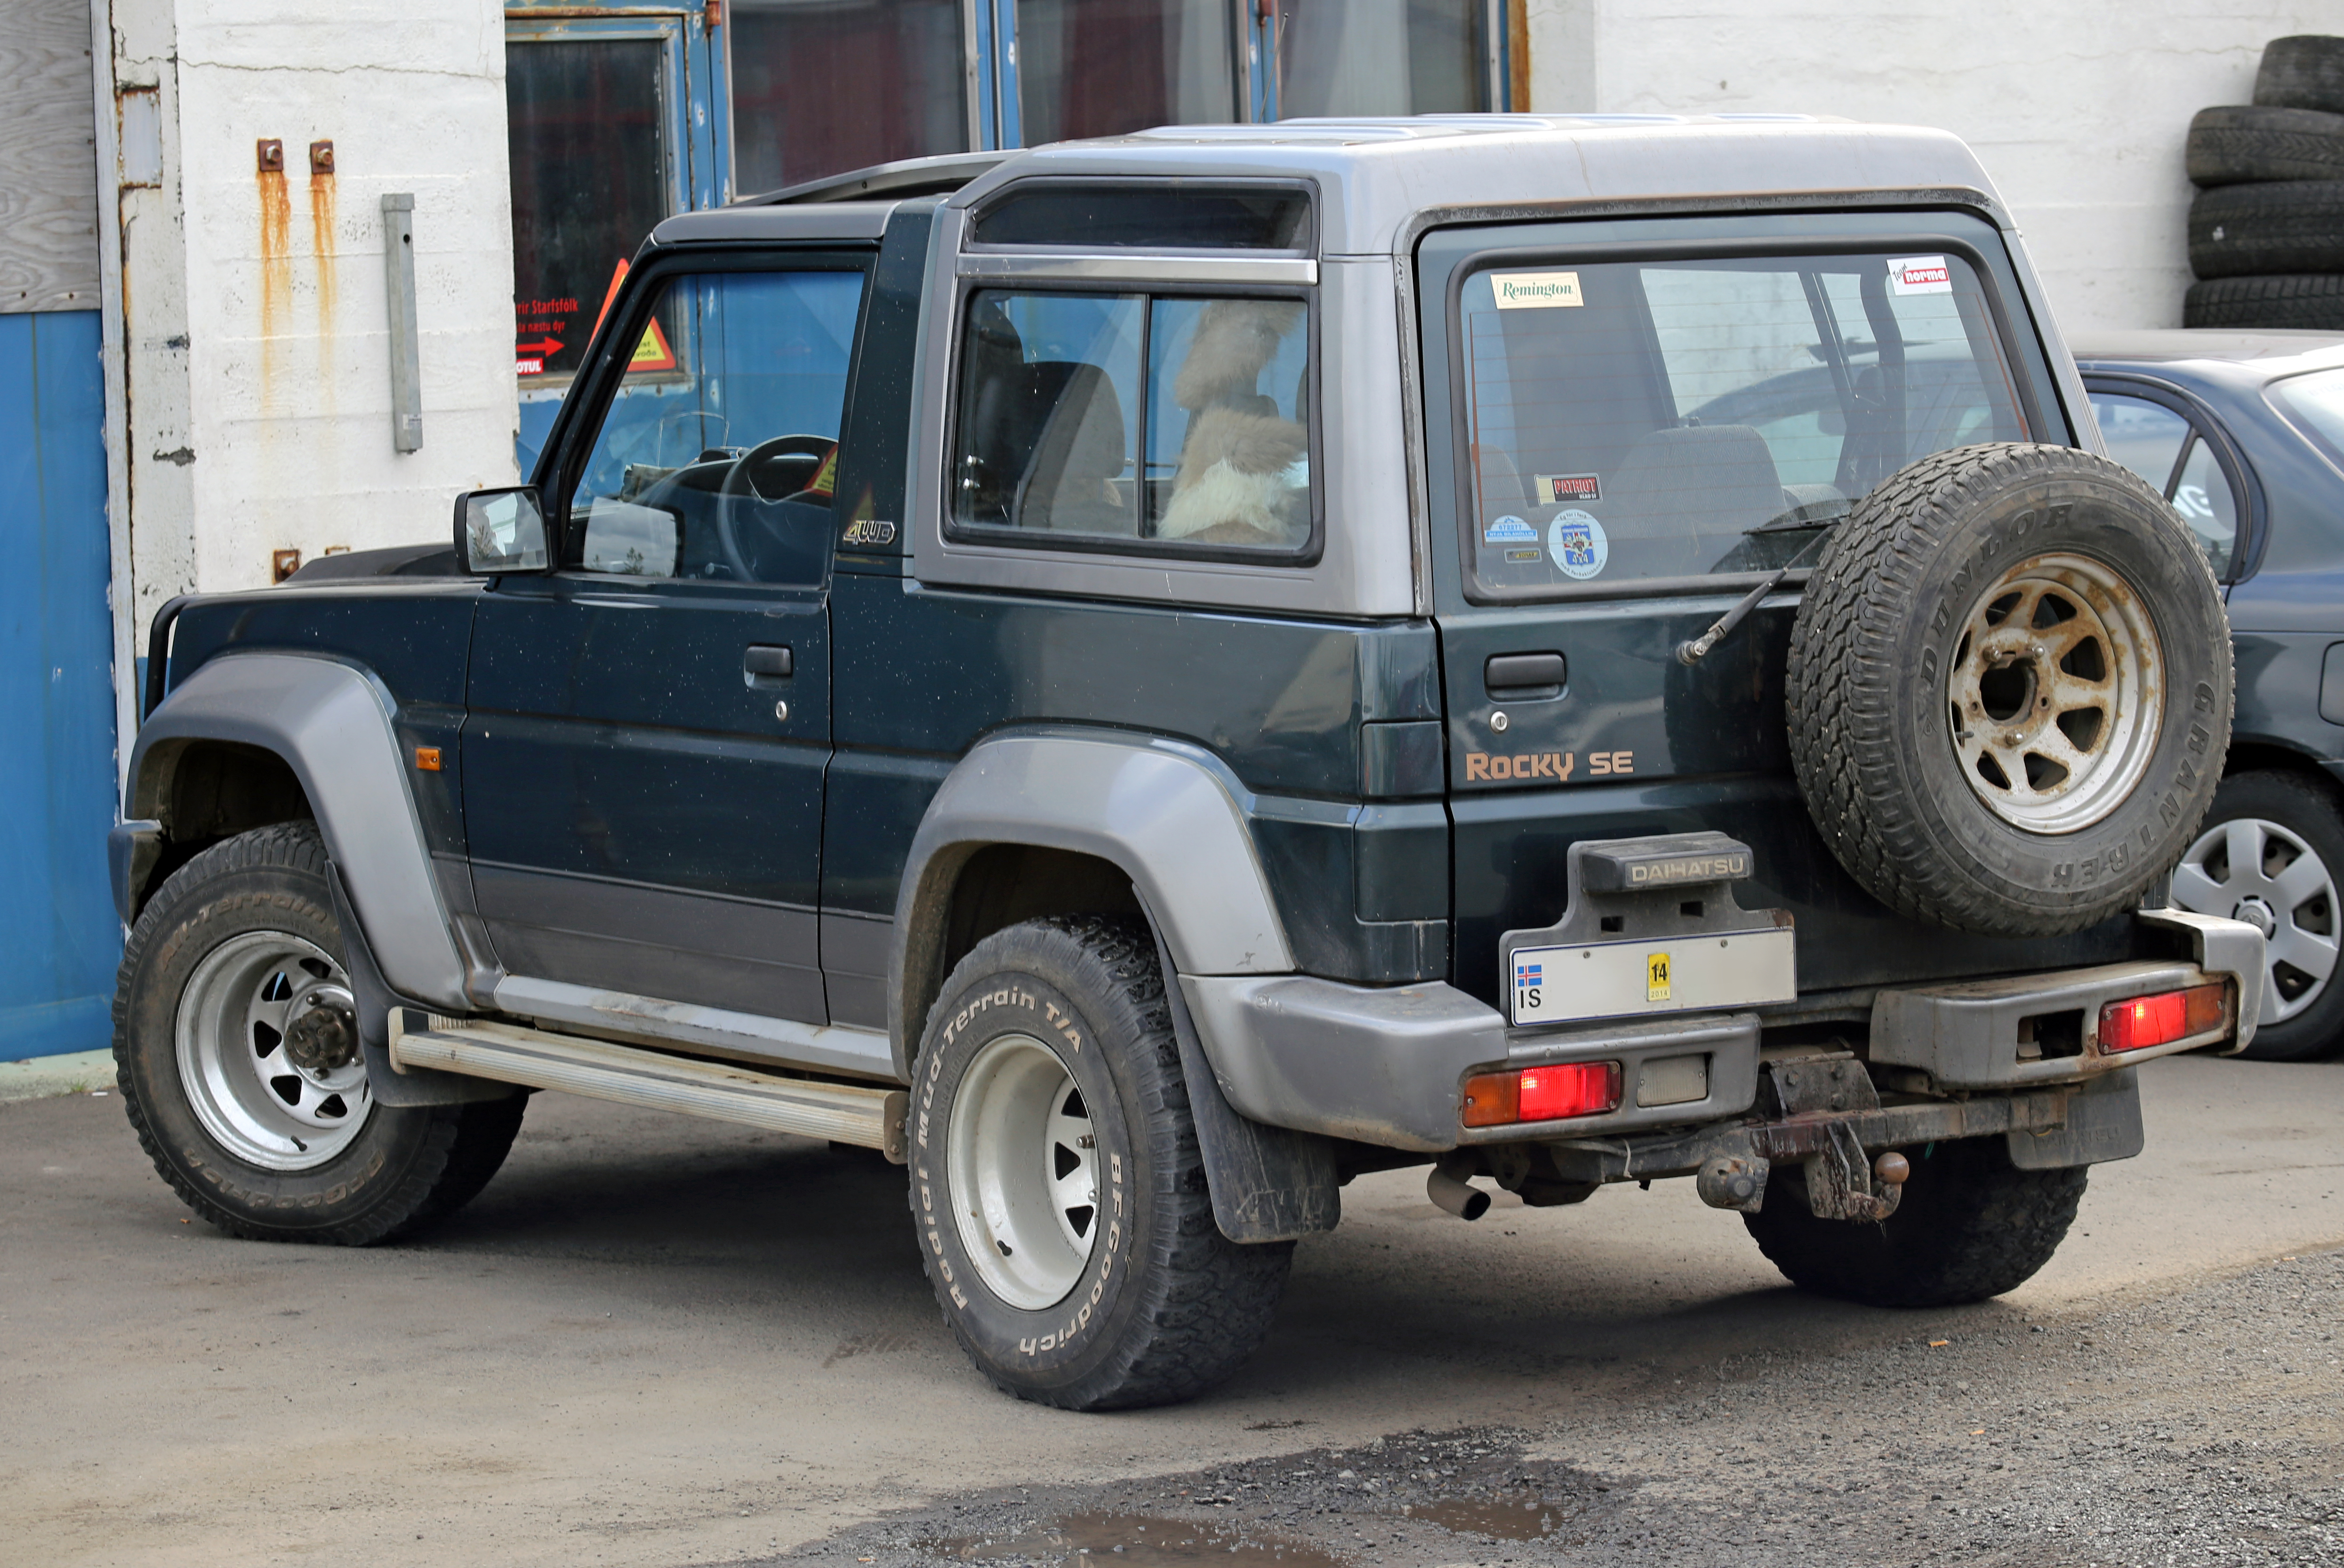 1995 Daihatsu Rocky soft top f7 f8 – pictures information and